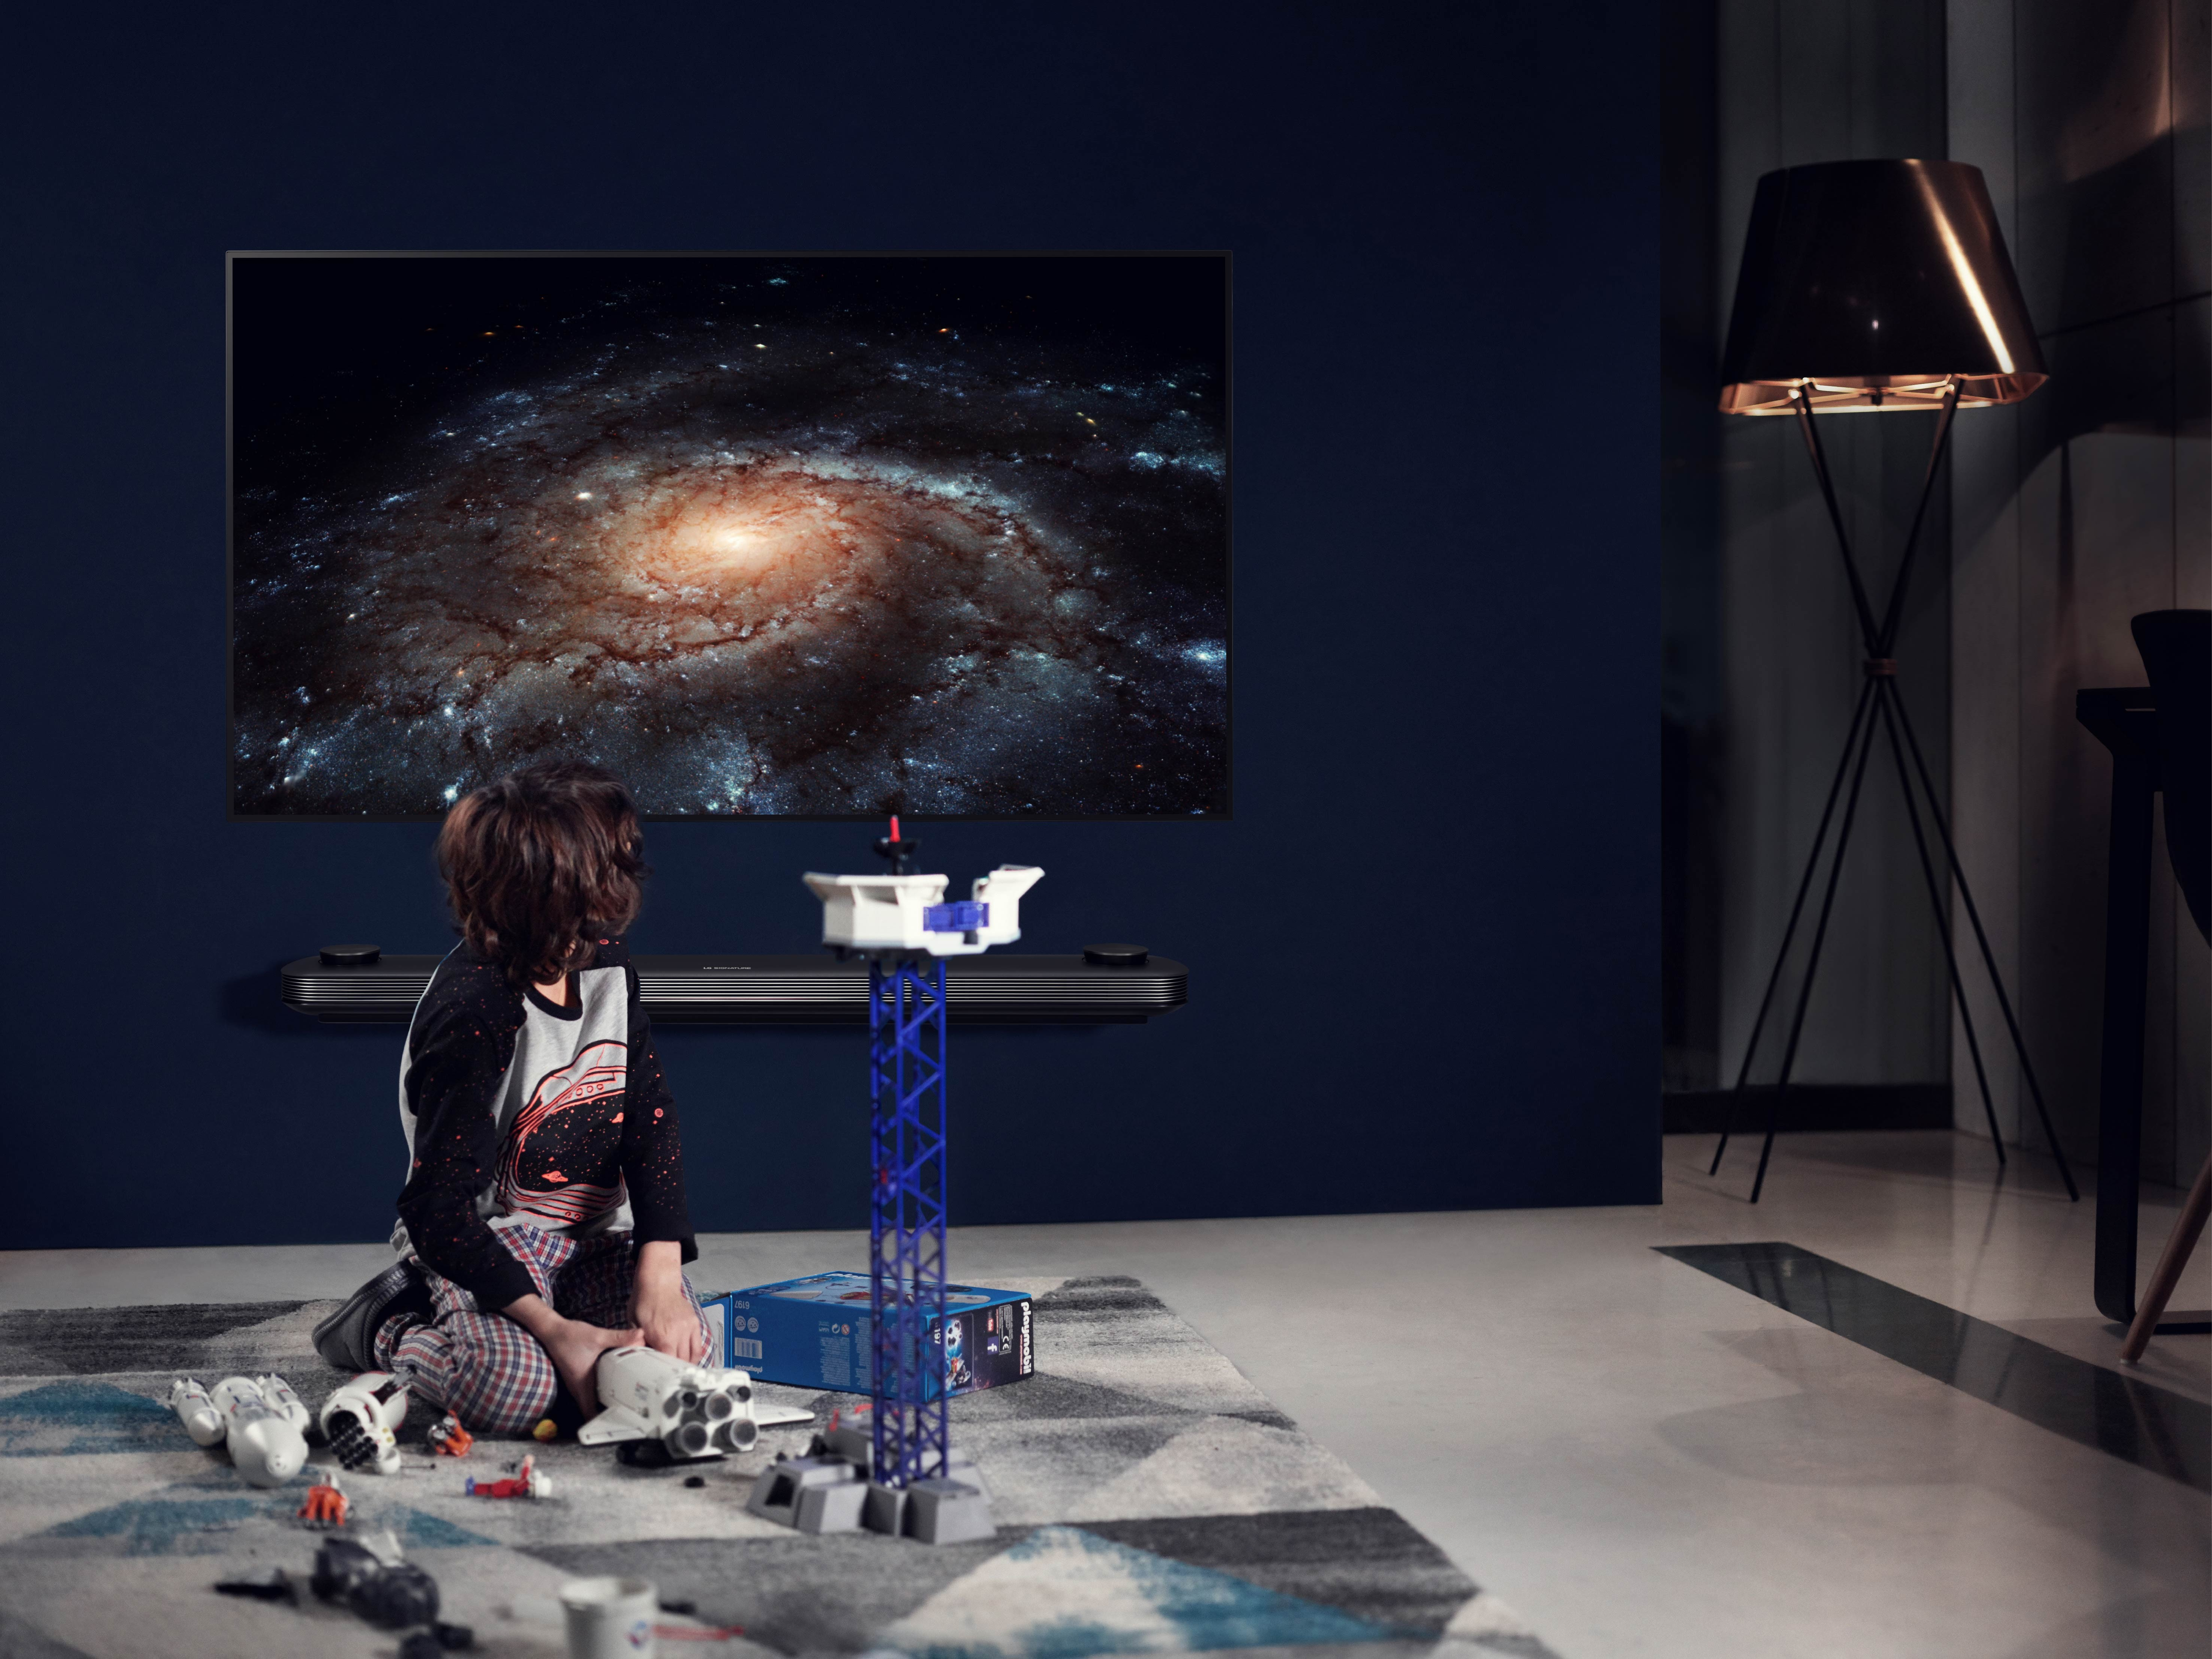 A small boy plays with space toys while the LG SIGNATURE OLED TV W is displayed on the wall with a picture of a galaxy on the screen.